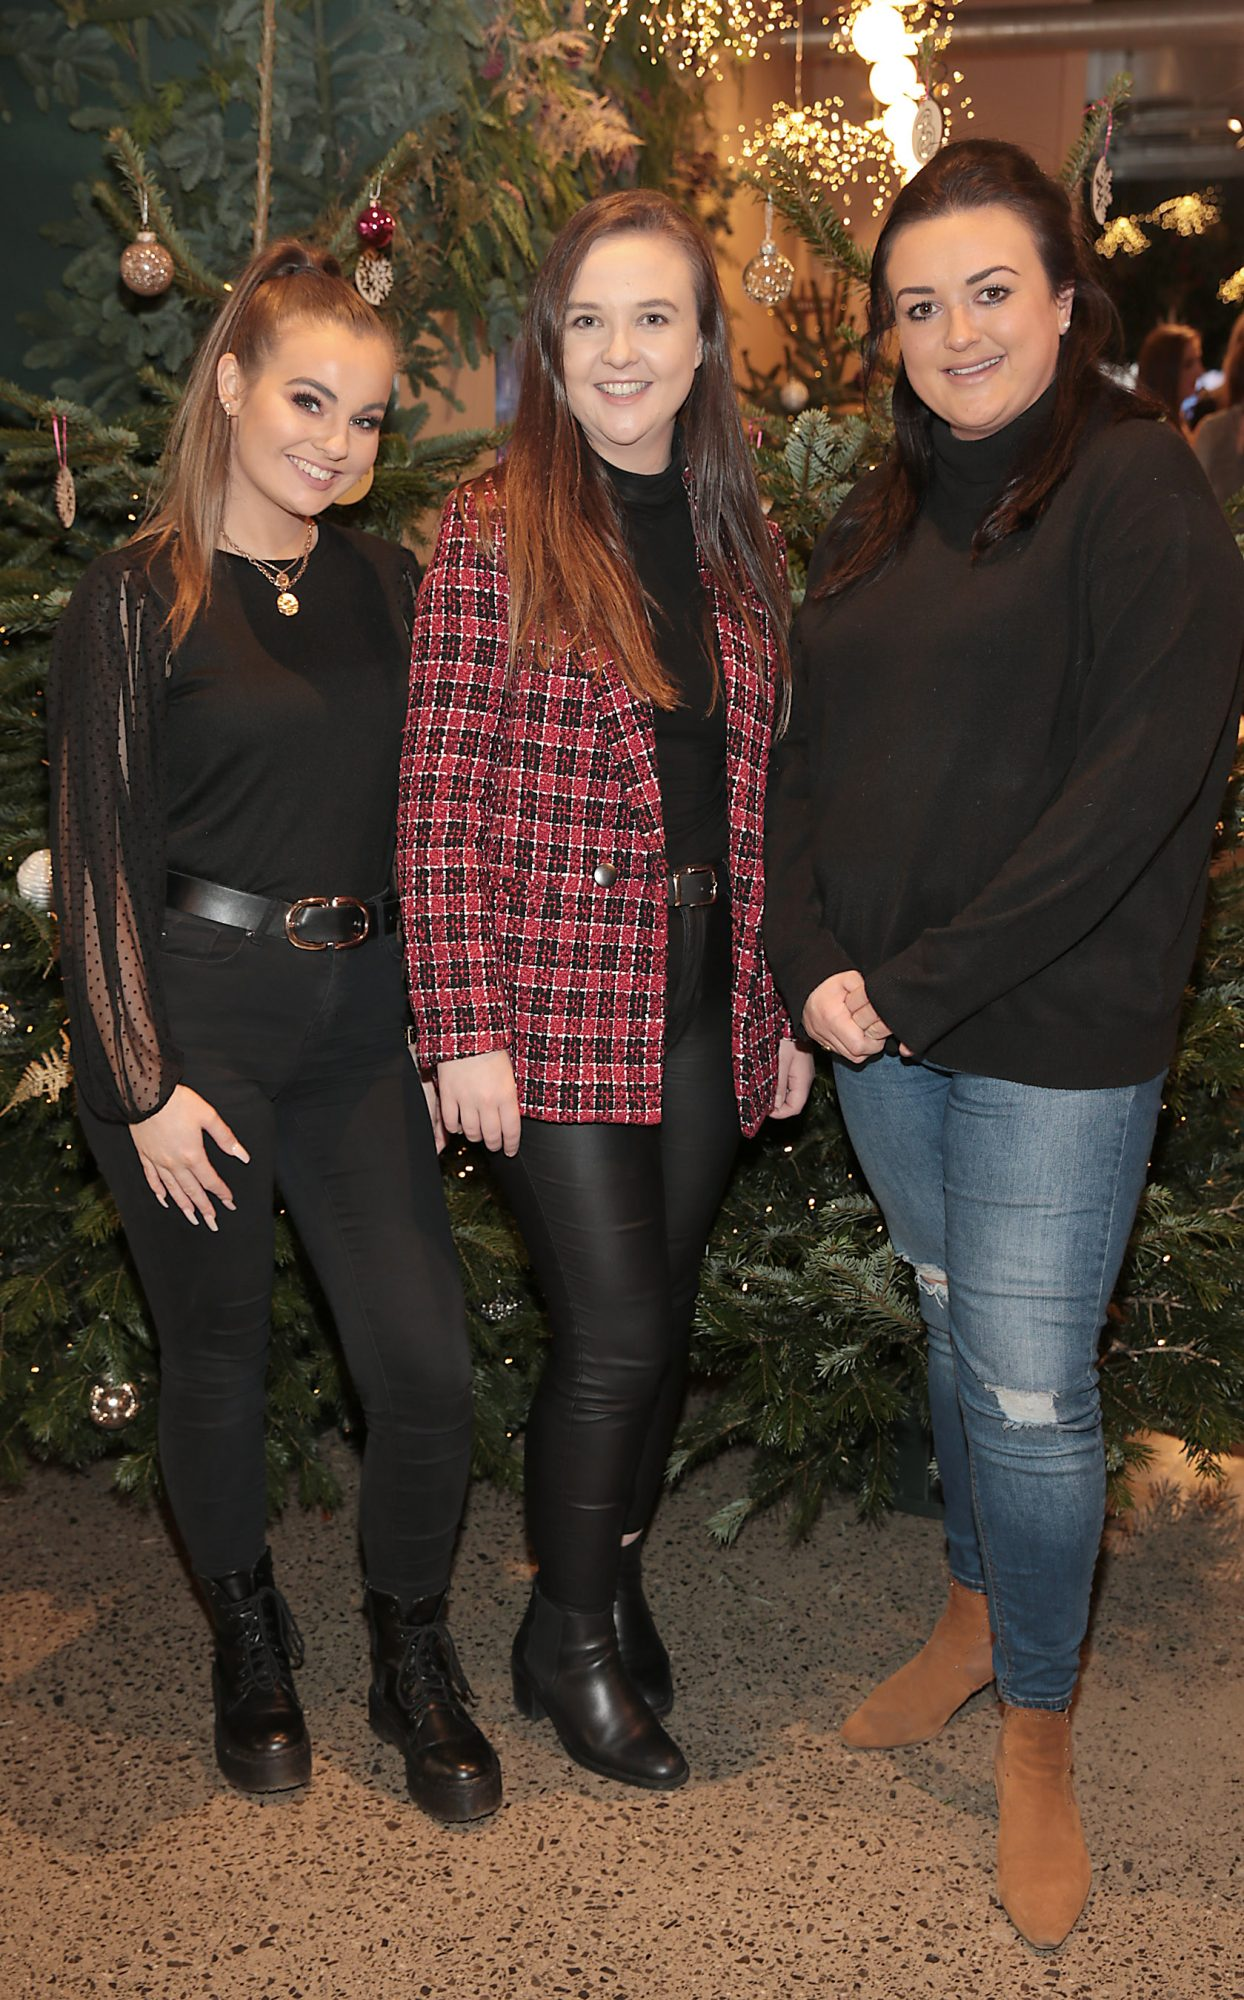 Aoife Hoverty,Therese Prendiville and and Kimberley Irwin at the opening of The Connected Restaurant, powered by Three  in Sir John Rogerson Quay Dublin Pic Brian McEvoy